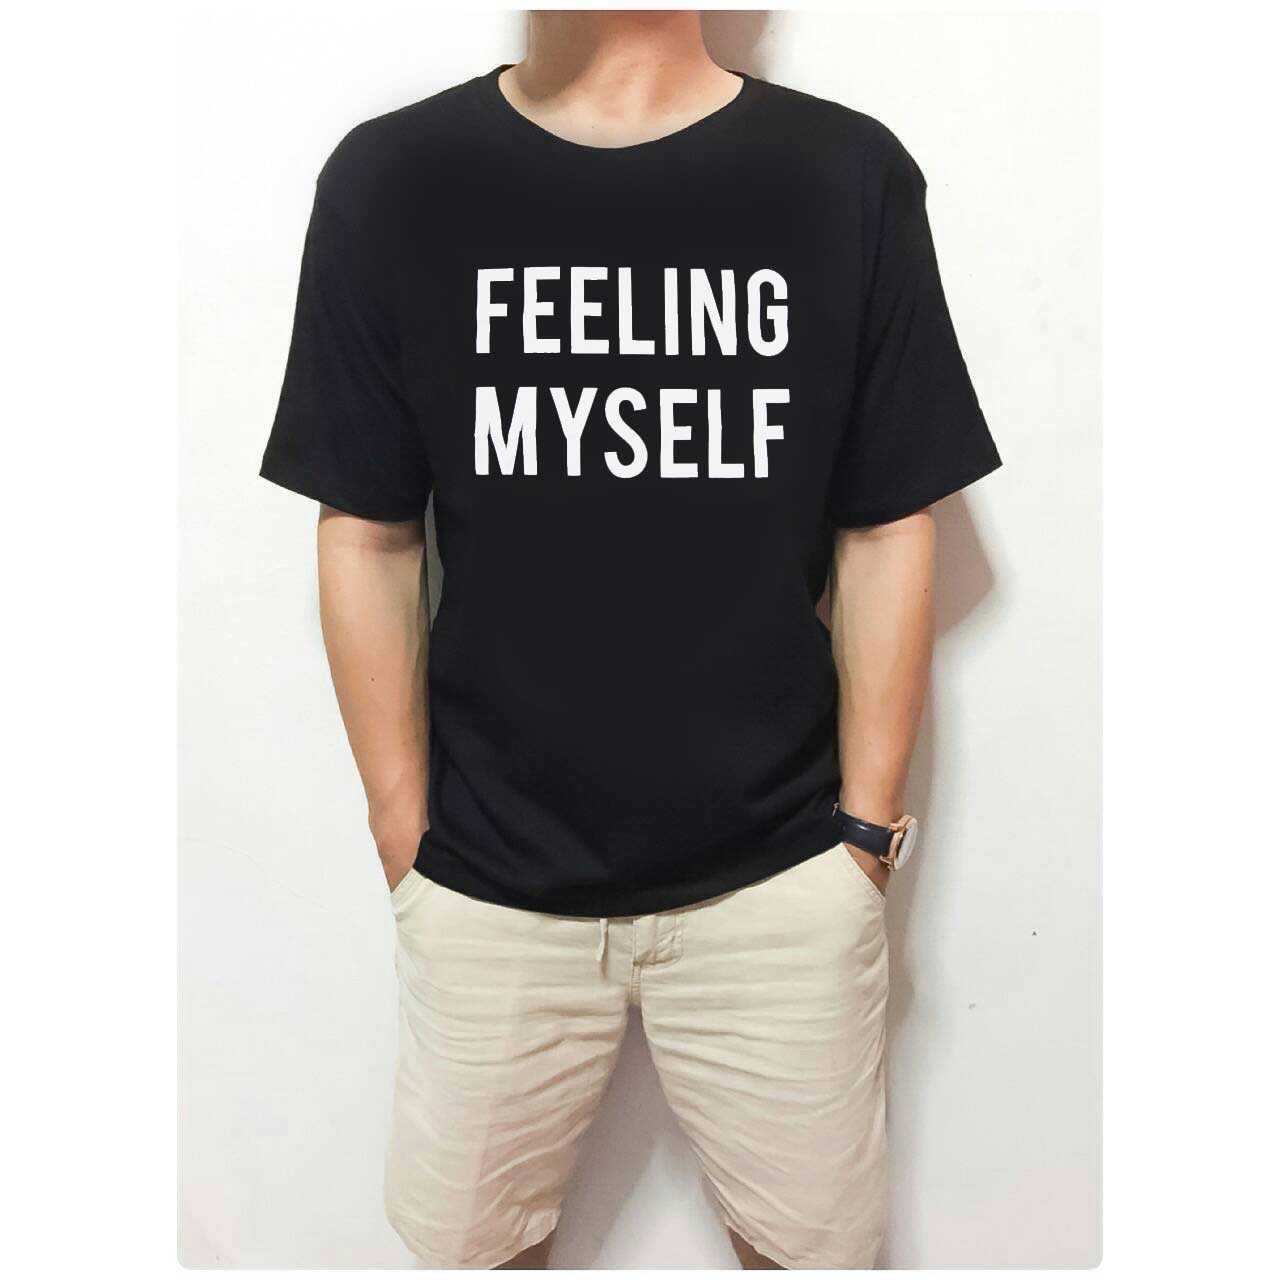 Ellipsesinc Shop Line Kaos Pria Lengan Pendek Basic White Shirt Tumblr Tee T Feeling Myself Fit To Xl